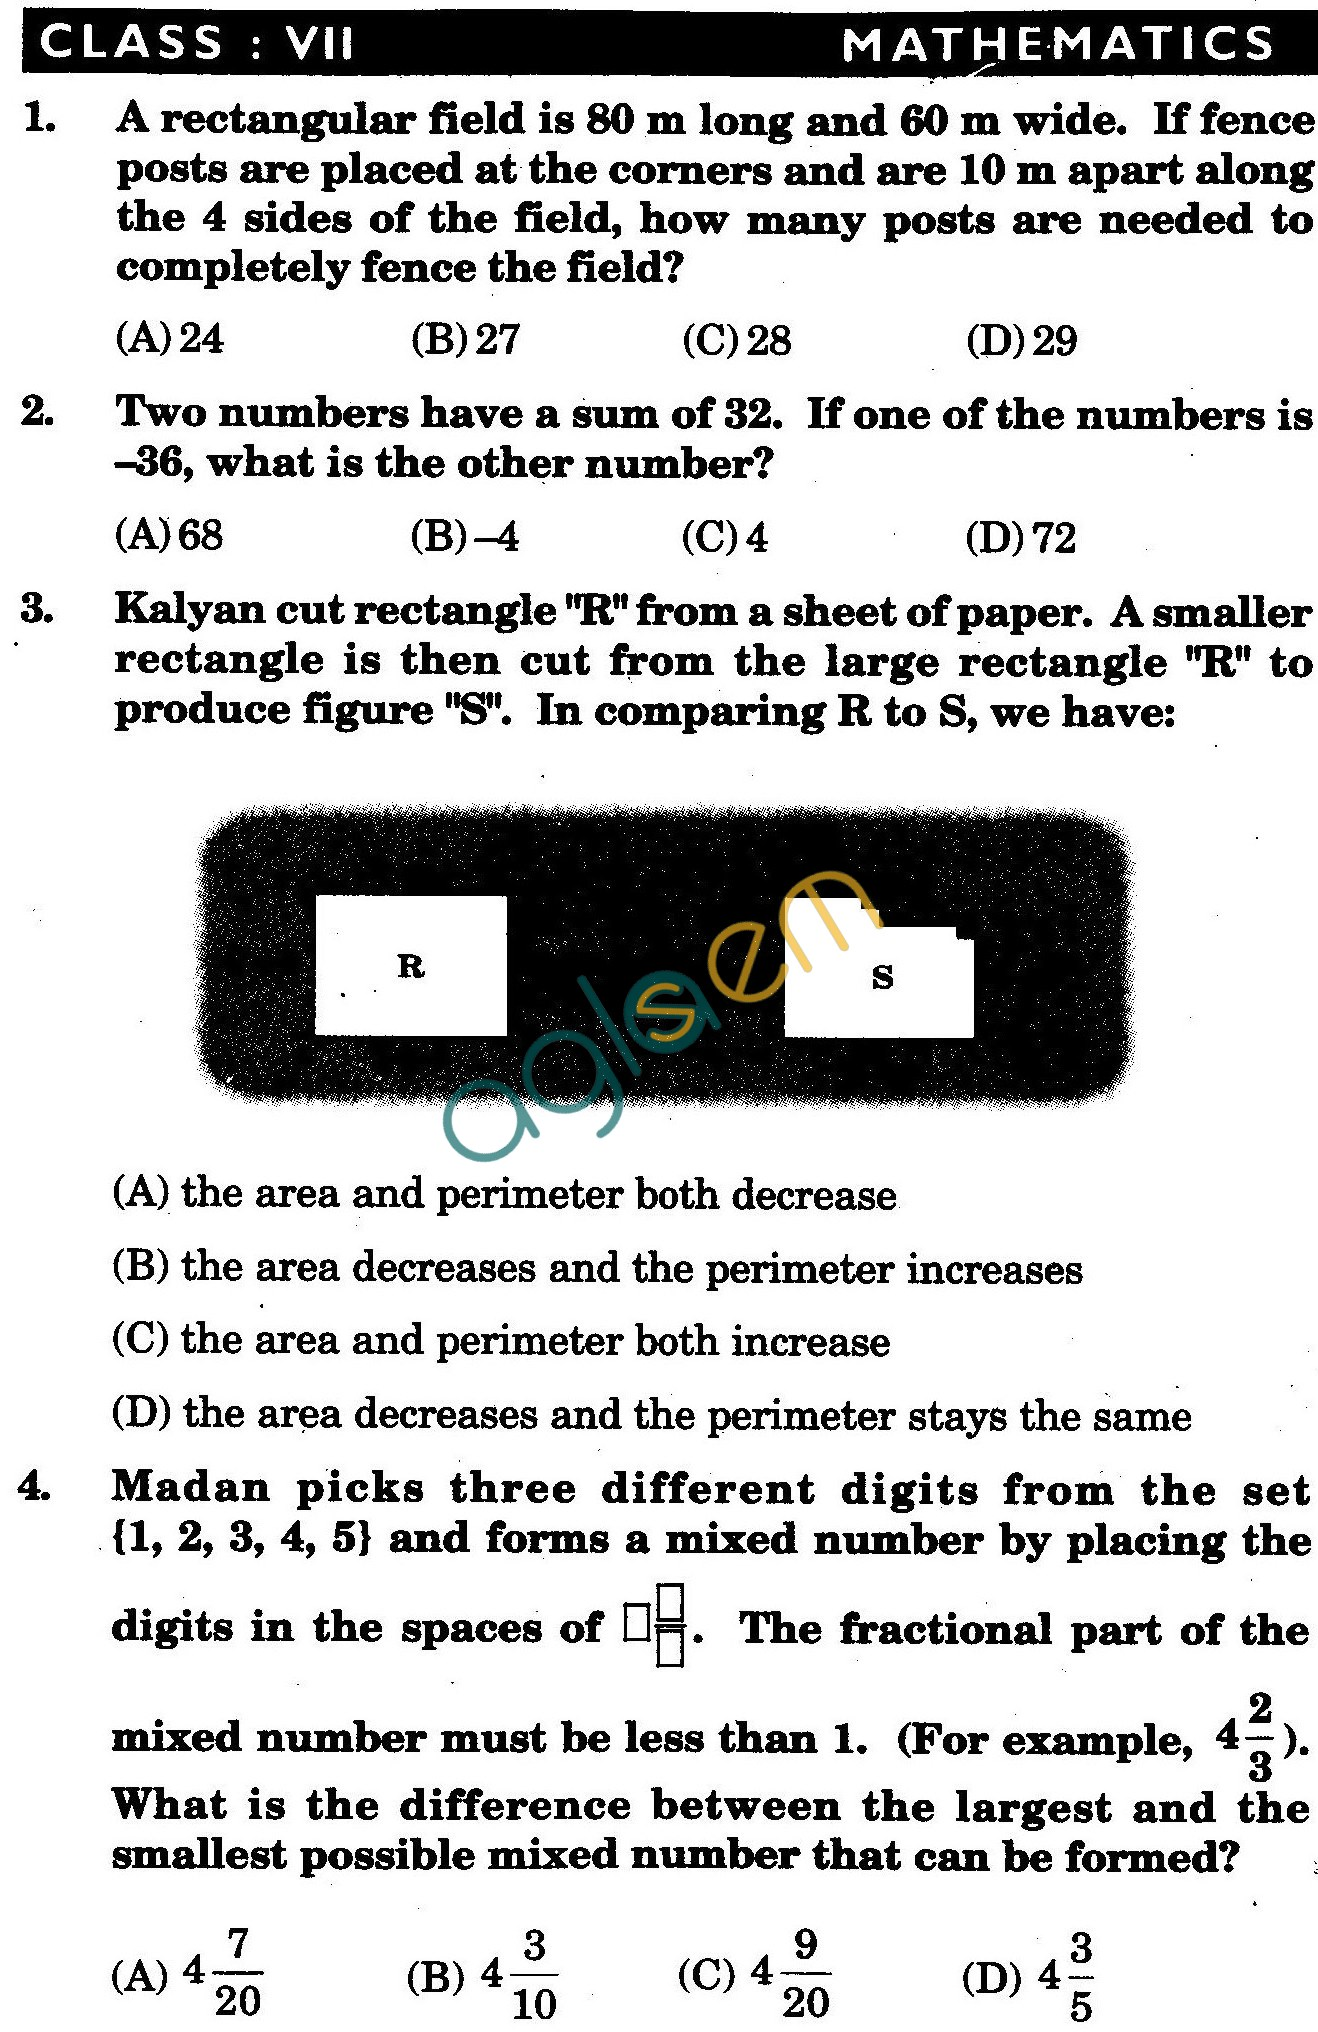 NSTSE 2009 Class VII Question Paper with Answers - Mathematics